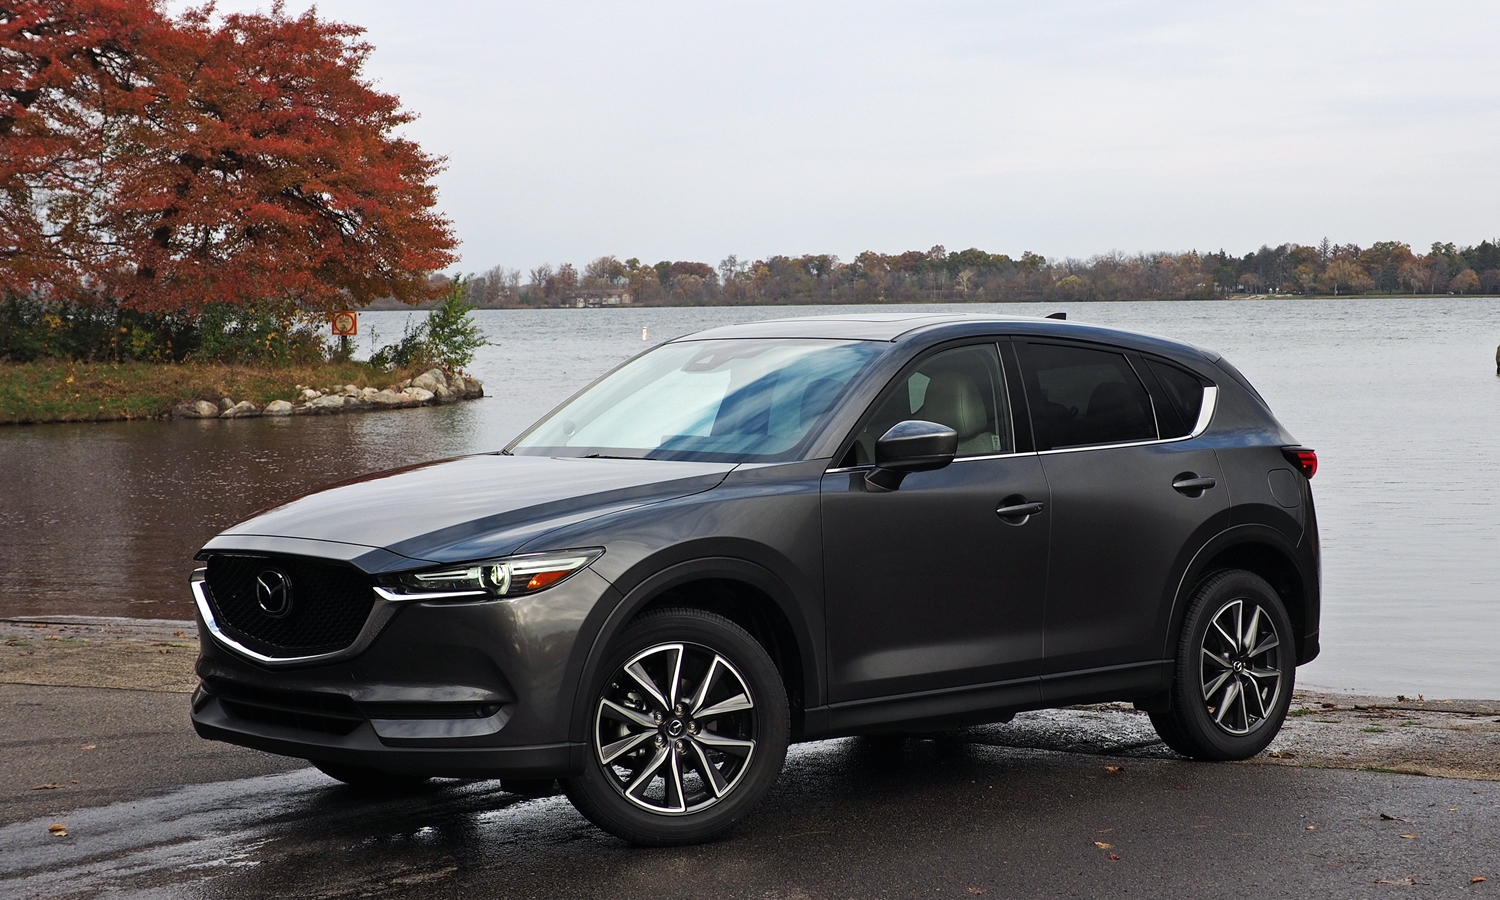 Mazda CX-5 Photos: 2017 Mazda CX-5 front quarter view